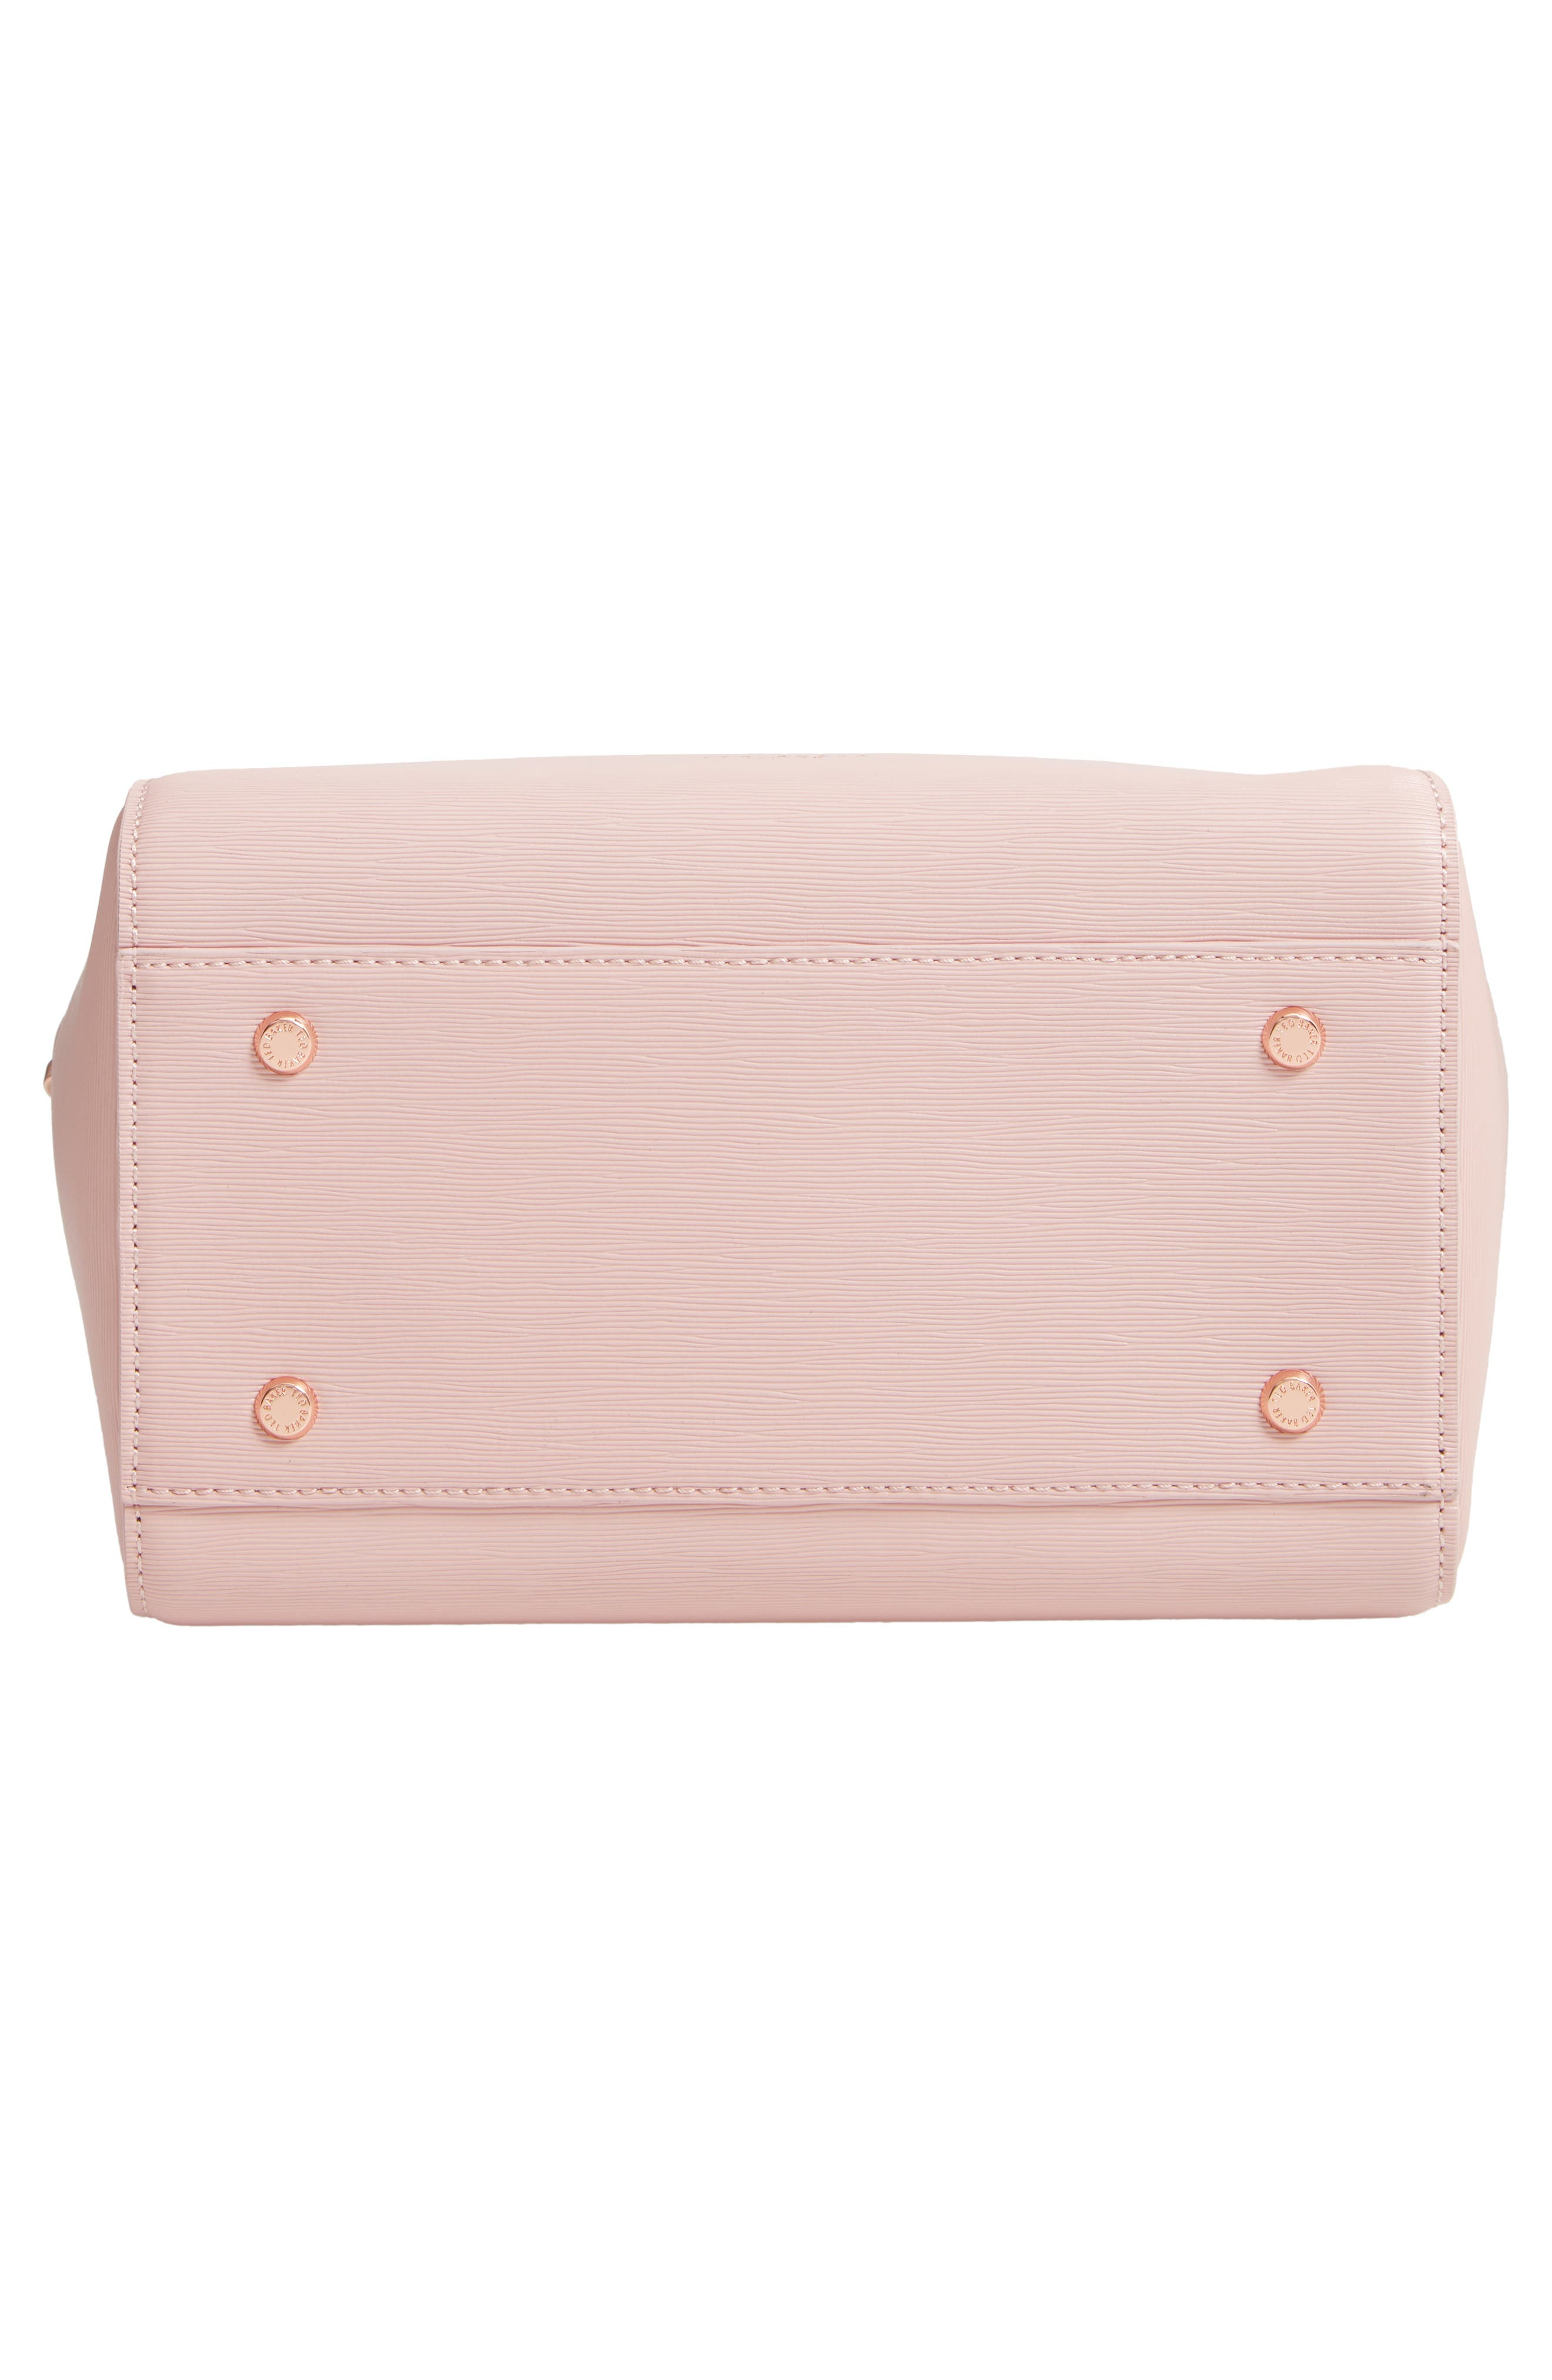 Bow Tote,                             Alternate thumbnail 6, color,                             LIGHT PINK